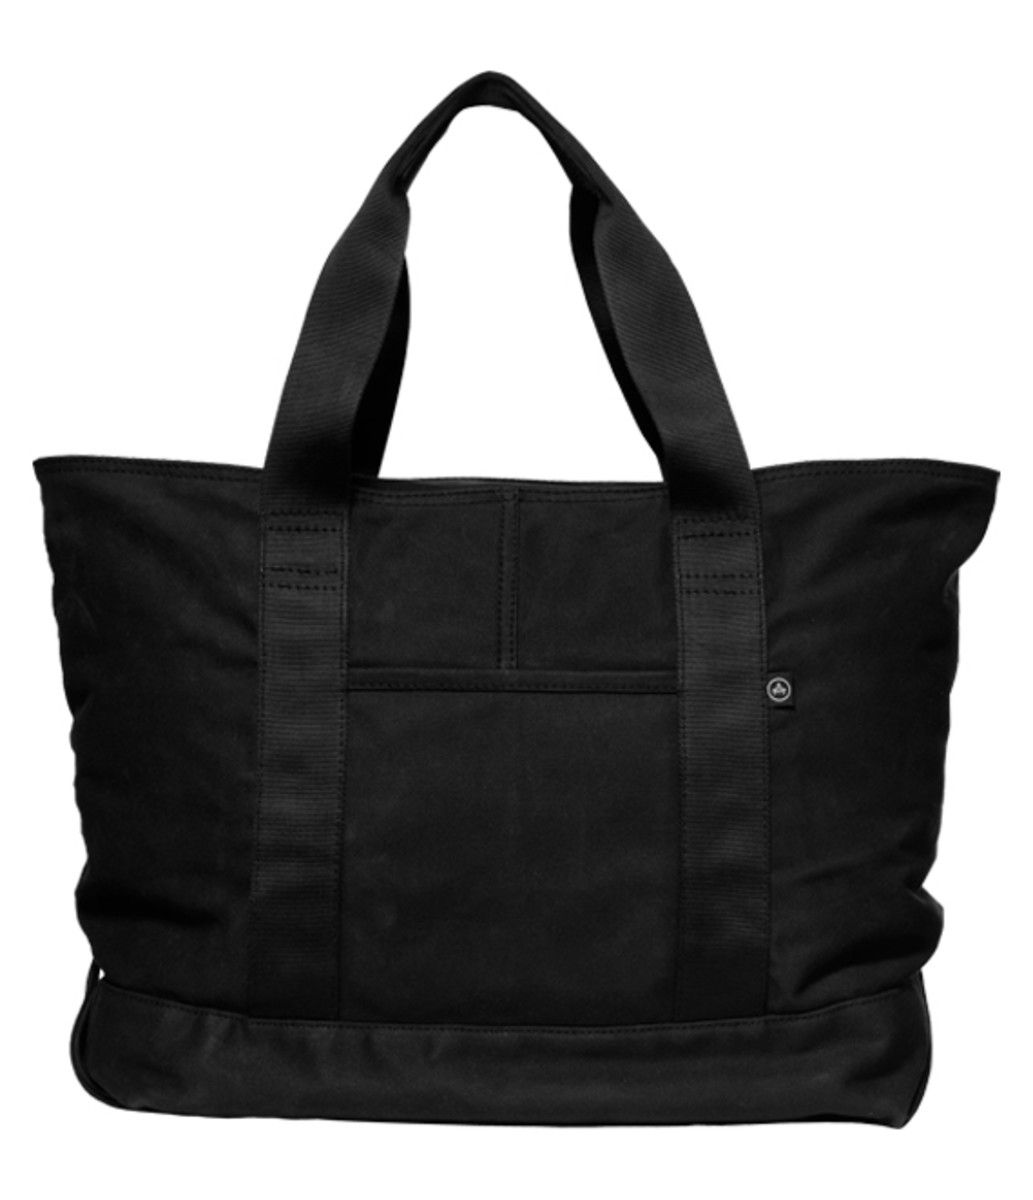 aether-canvas-utility-tote-bag-01